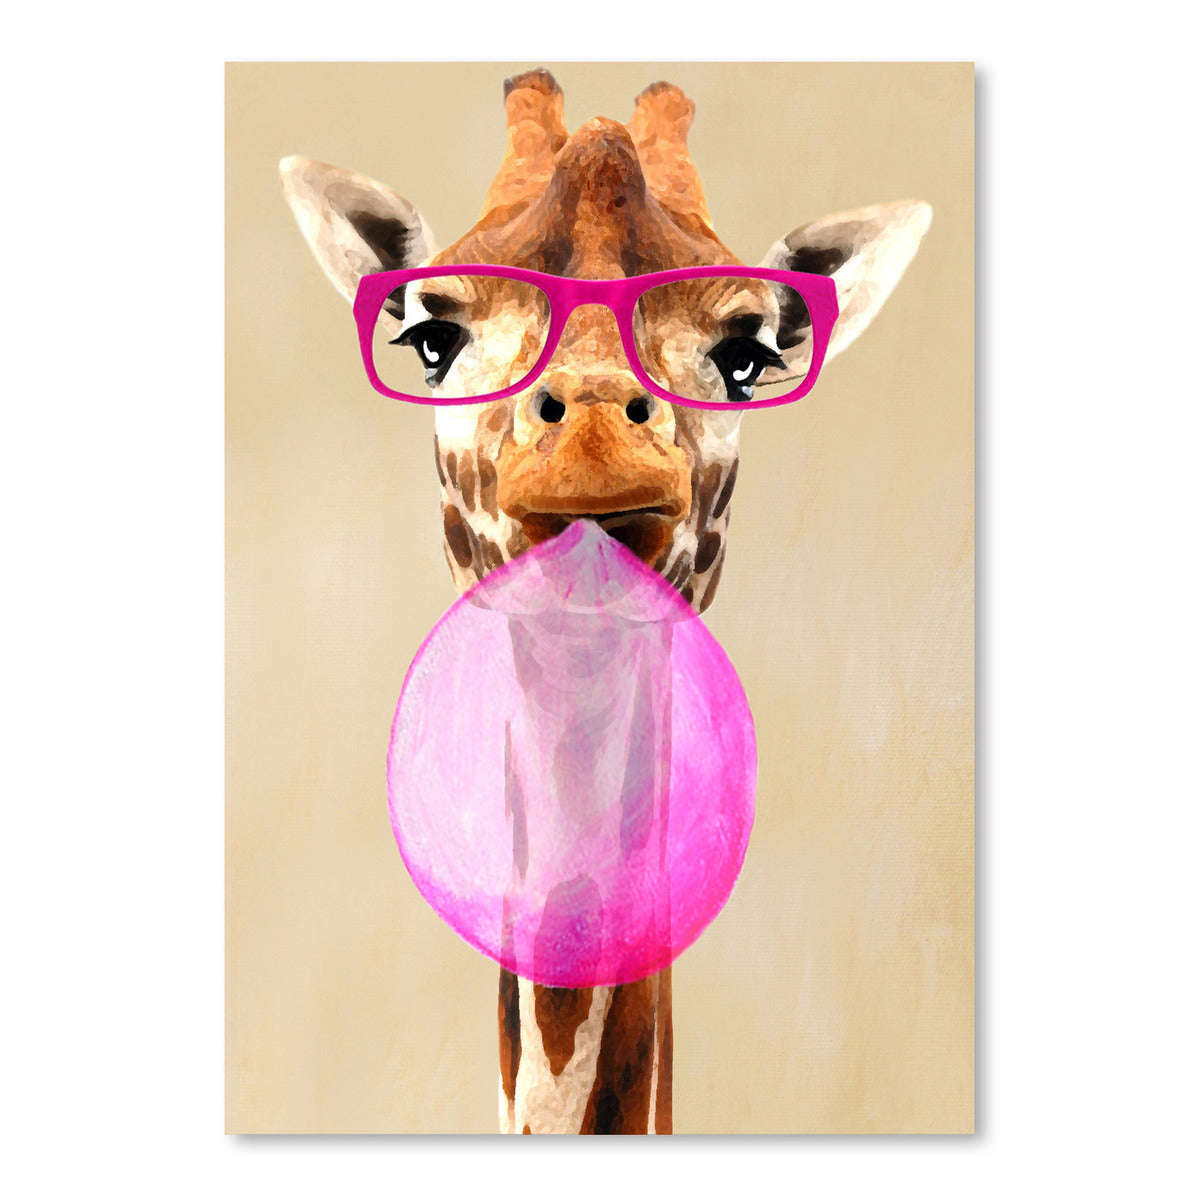 Giraffe With Spectacles And Bubblegum by Coco de Paris - Art Print - Americanflat